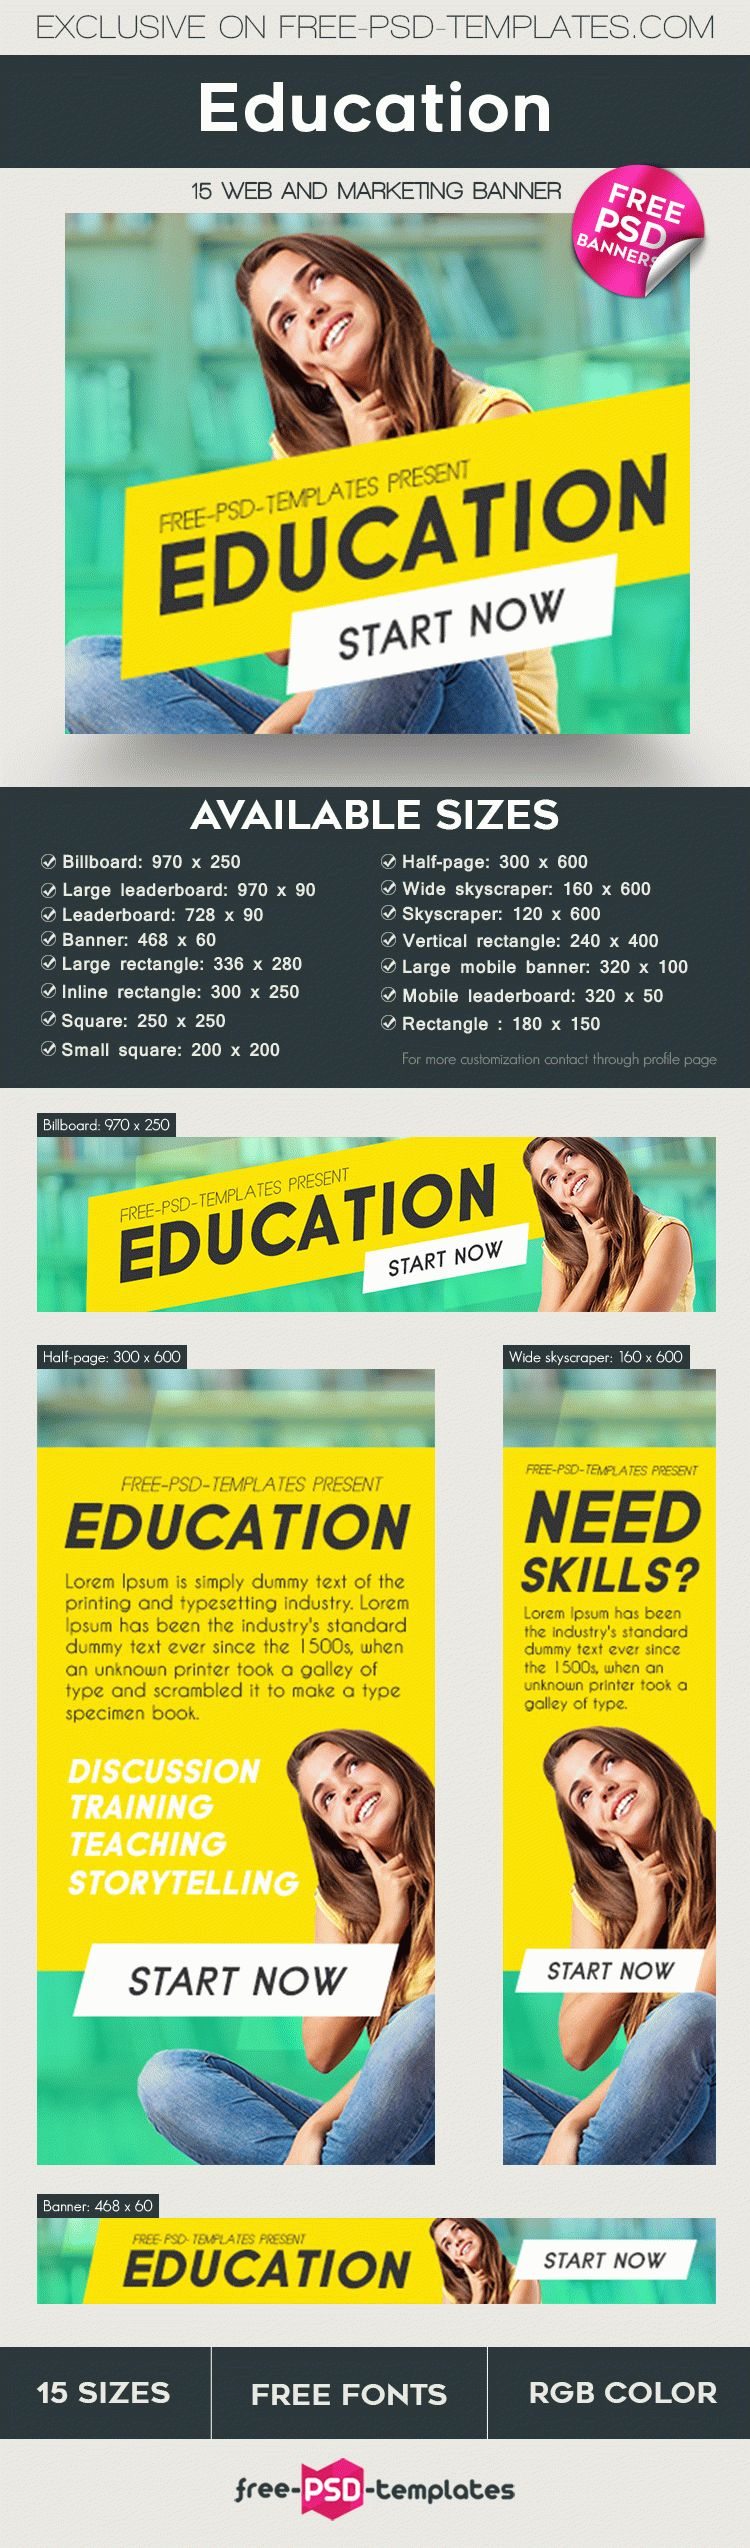 15 Free Education Banners Collection in PSD | Free PSD Templates